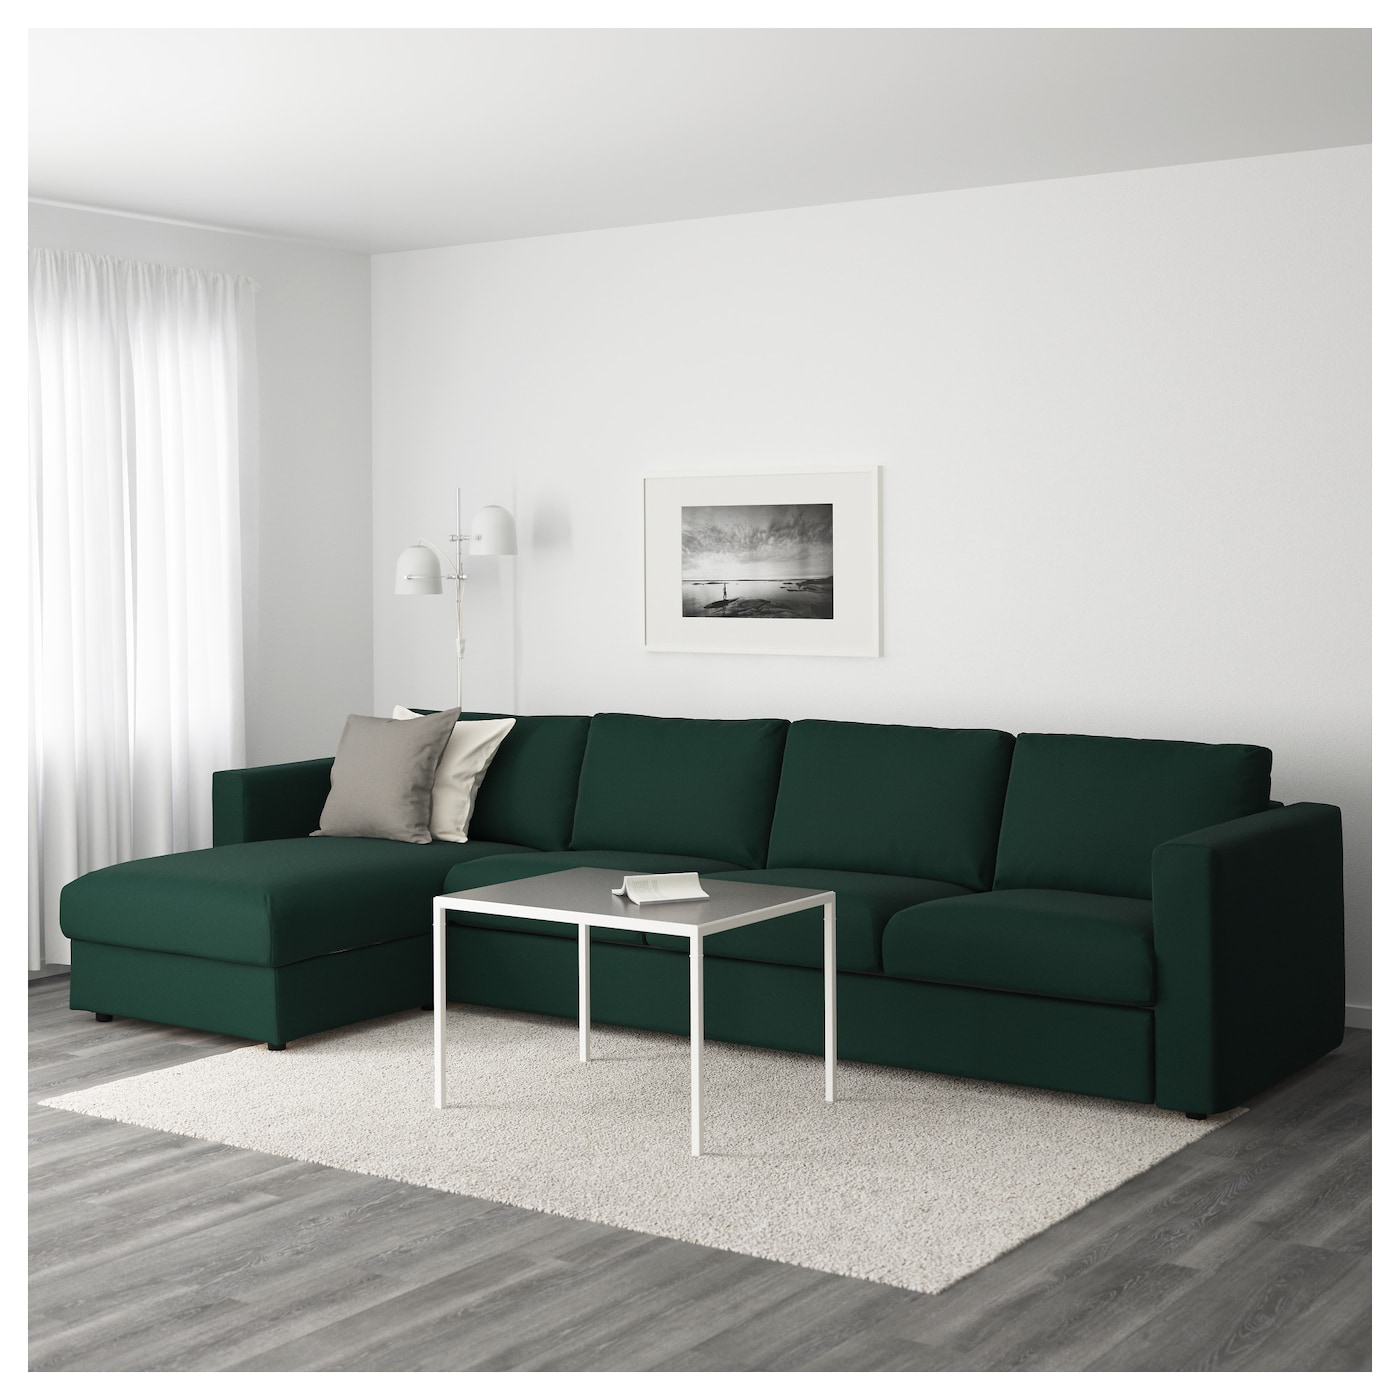 Vimle 4 seat sofa with chaise longue gunnared dark green for Green sectional sofa with chaise